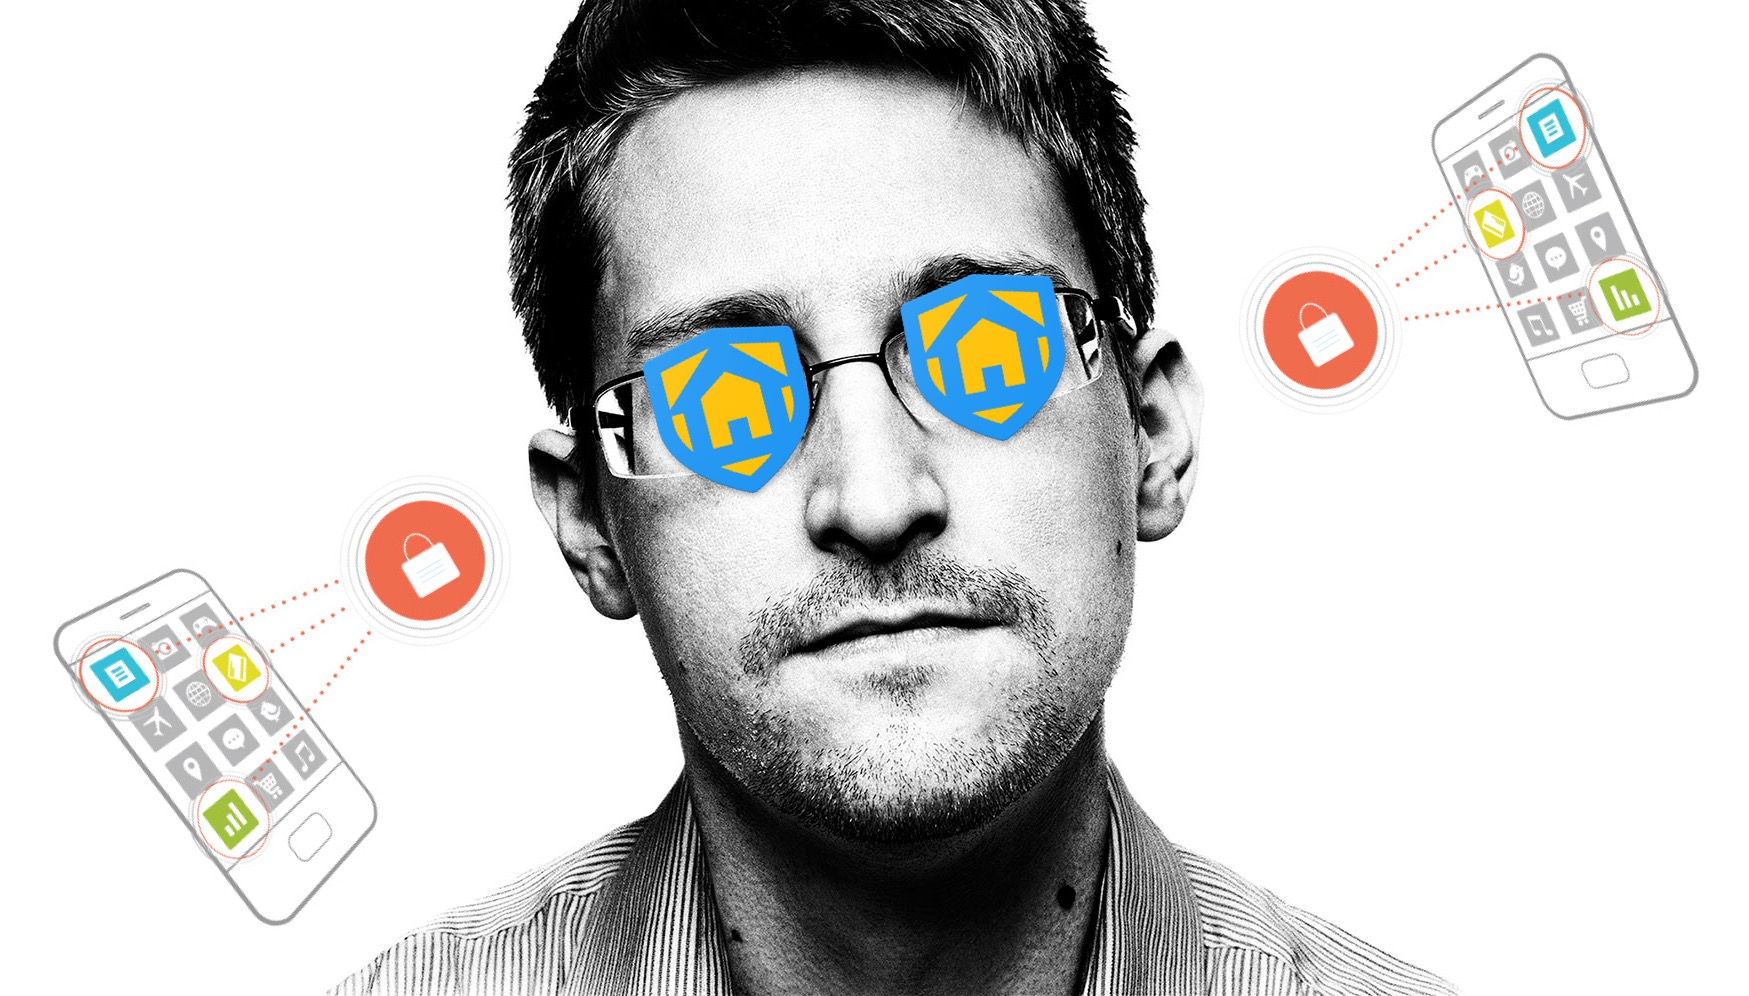 edward snowden haven app to prevent surveillance on android phones